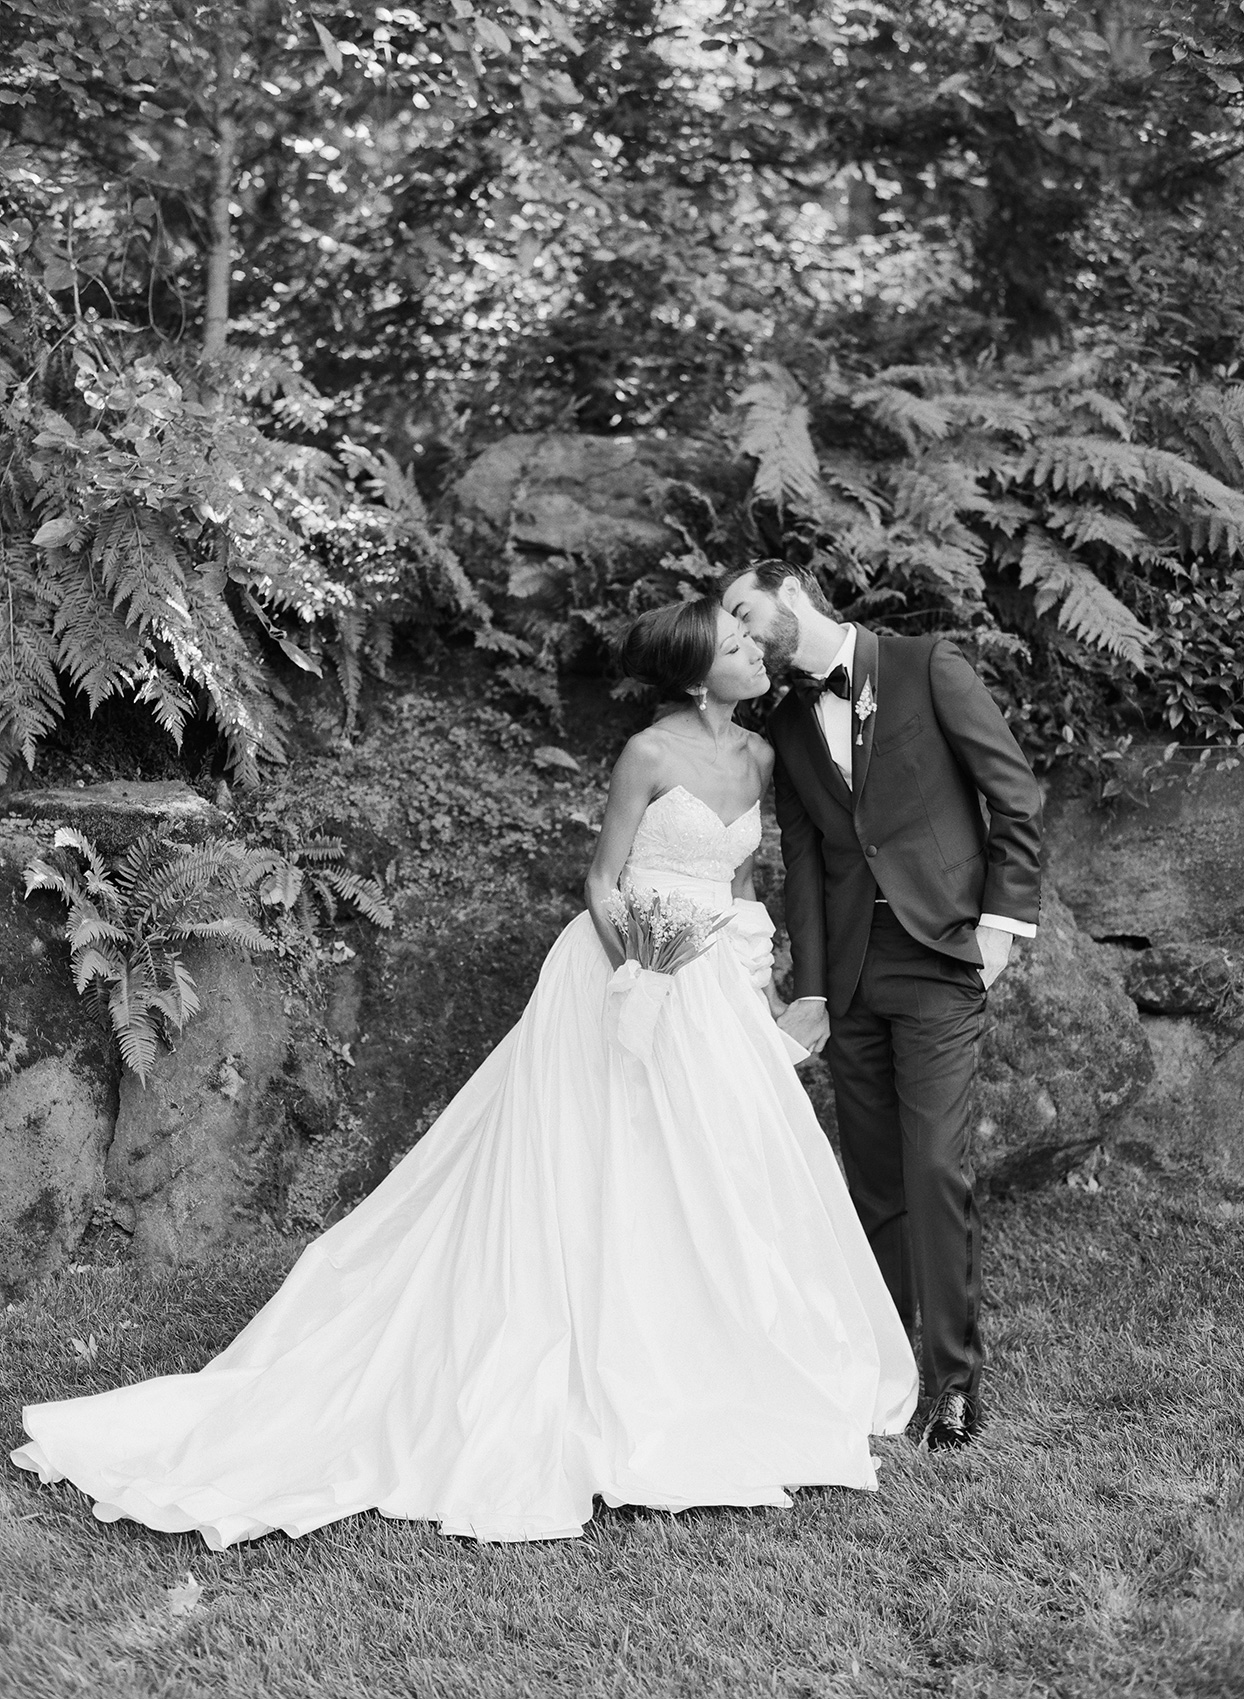 Bride and groom in front of foliage